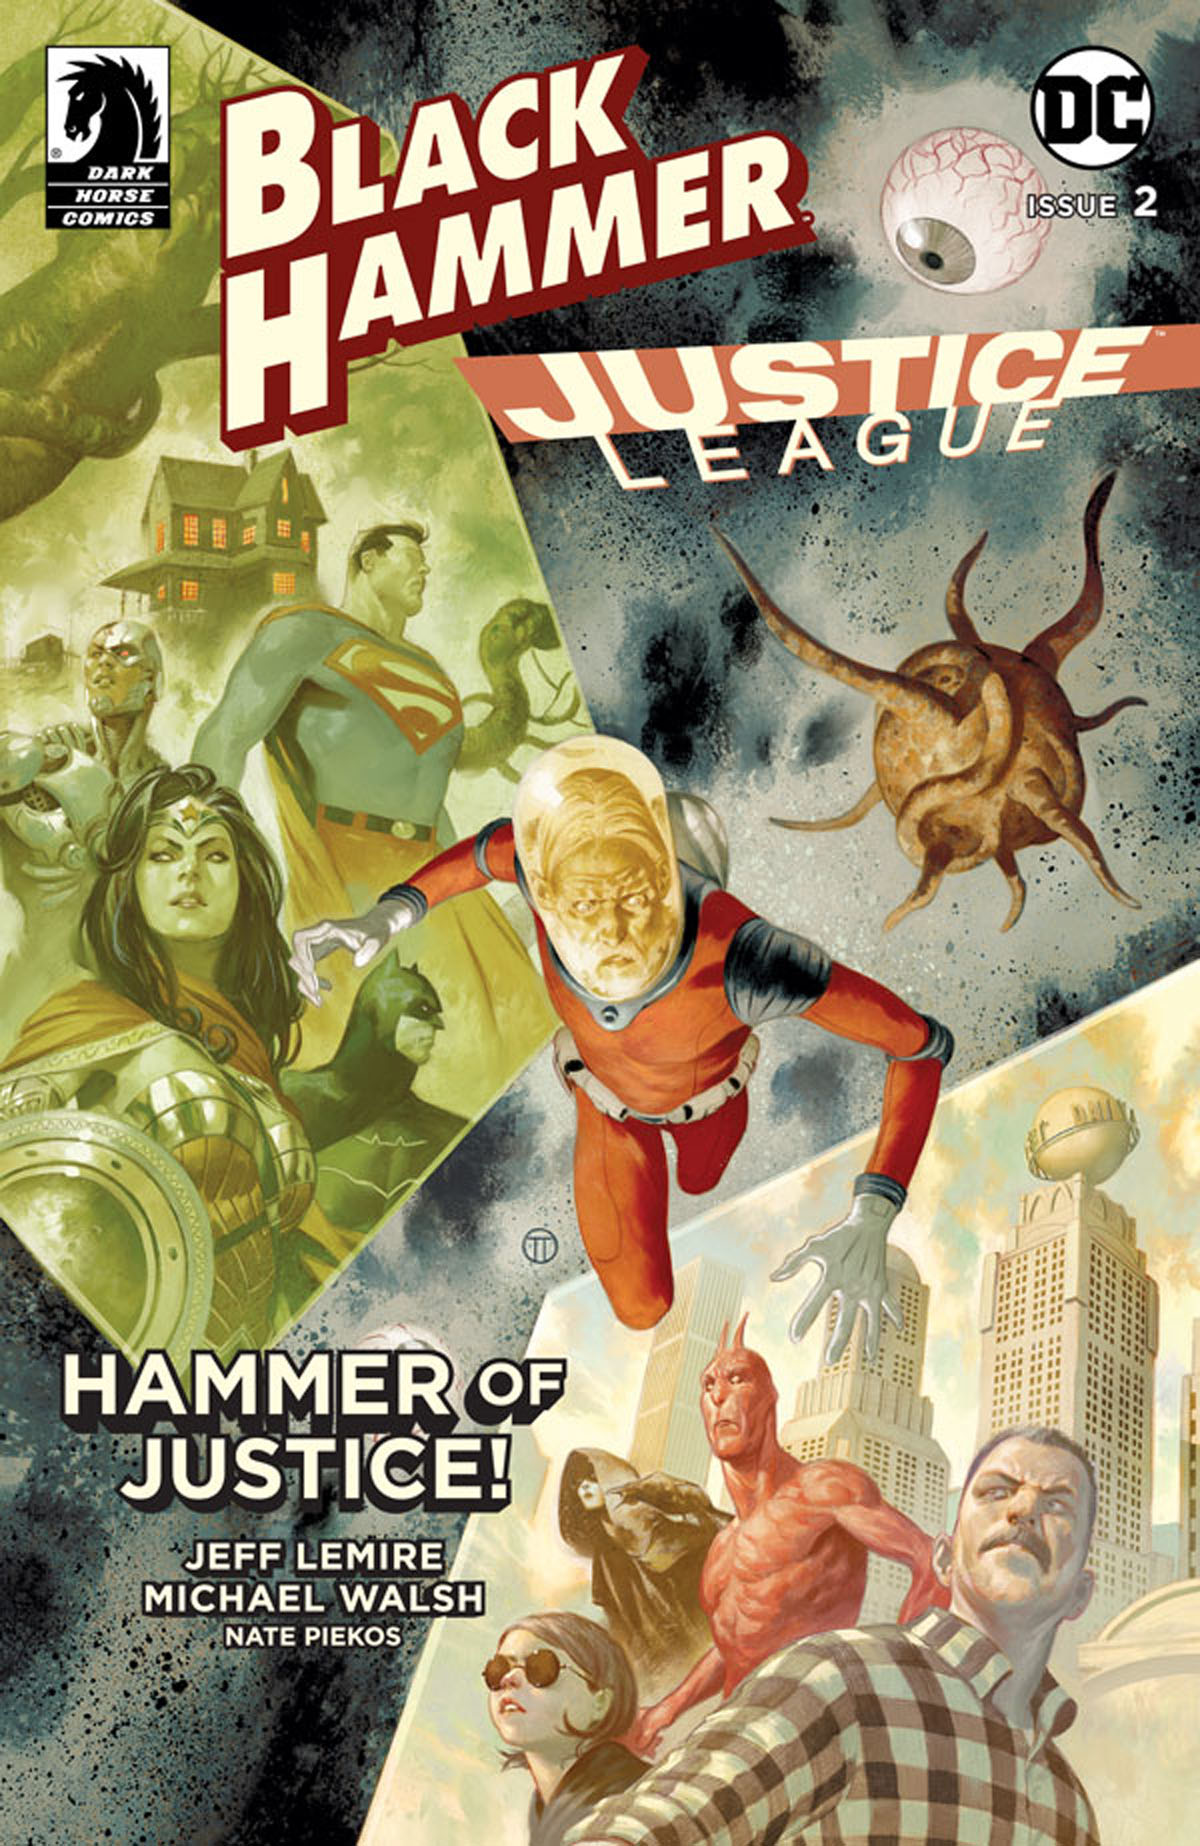 Black Hammer/Justice League #2 cover